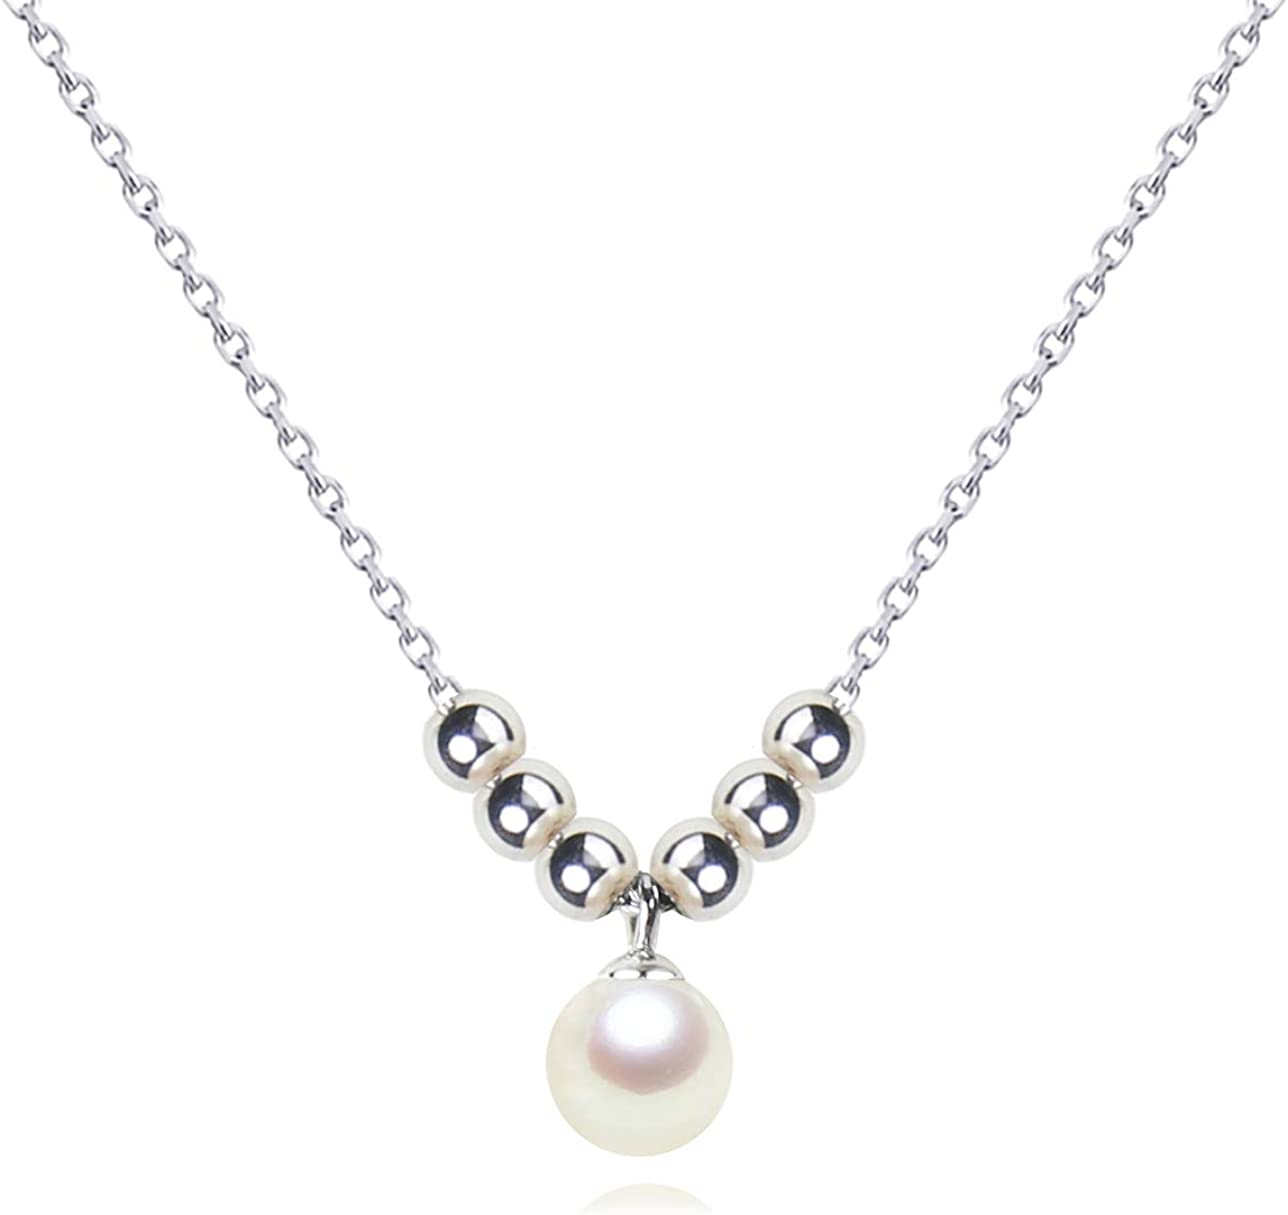 18 925 Sterling Silver Chain 7-8mm Single White Round Freshwater Cultured Pearl Necklace